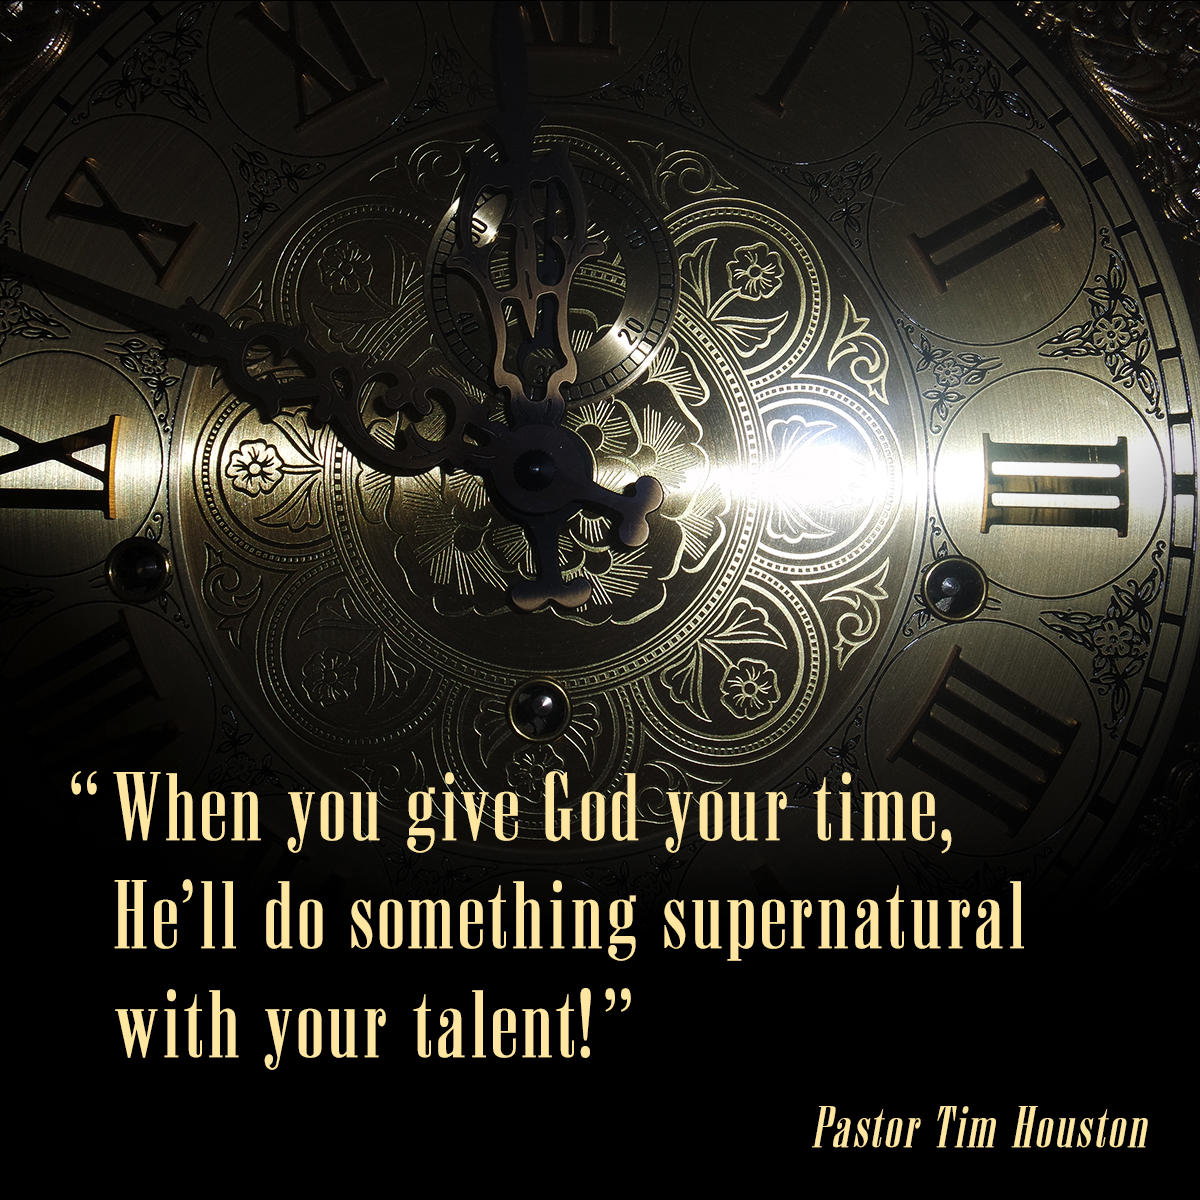 """When you give God your time, He'll do something supernatural with your talent!"" – Pastor Tim Houston"